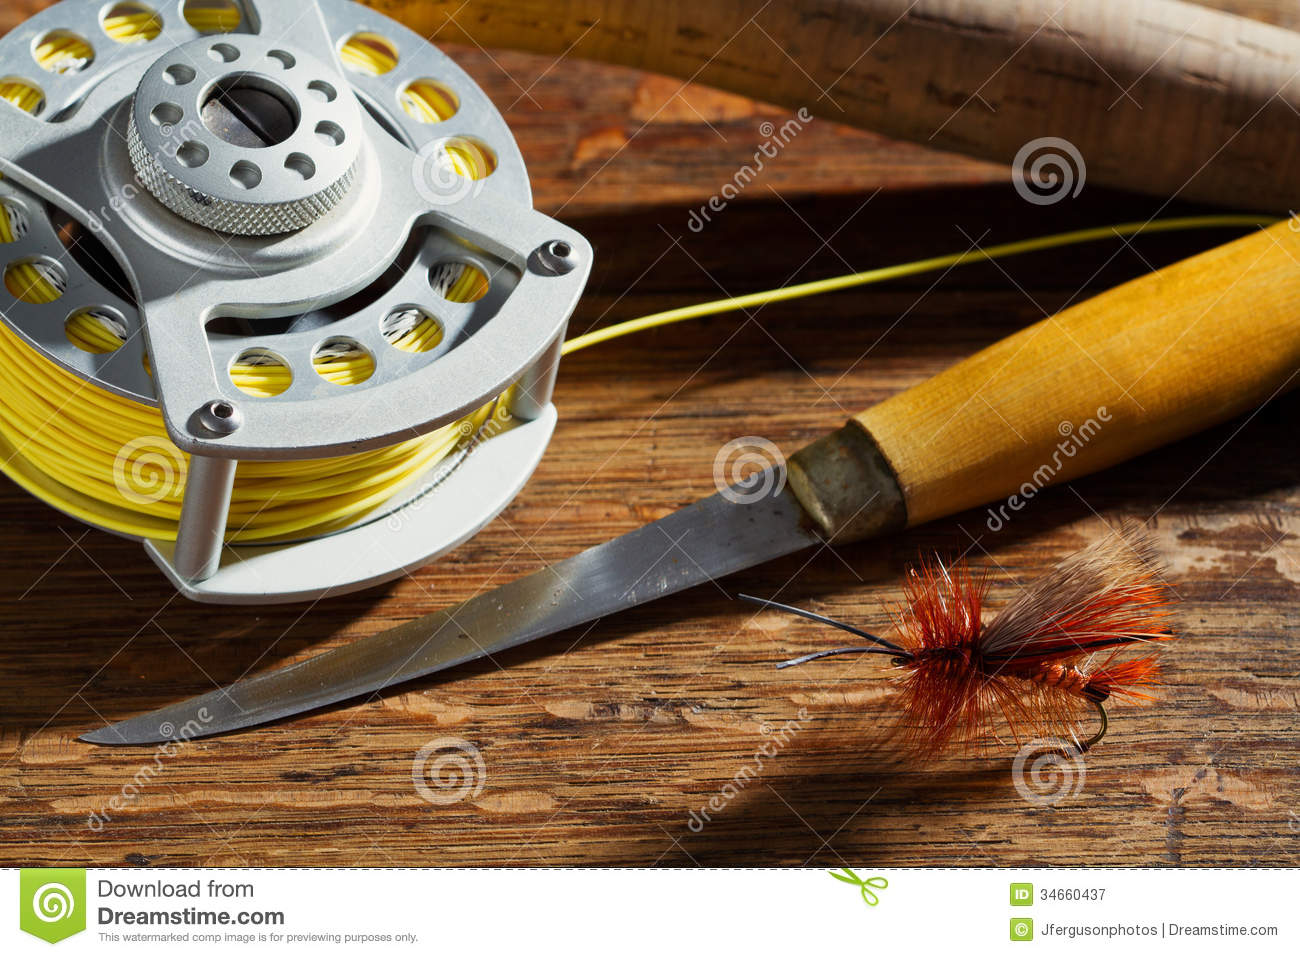 Fly fishing gear royalty free stock photography image for Best fishing gear